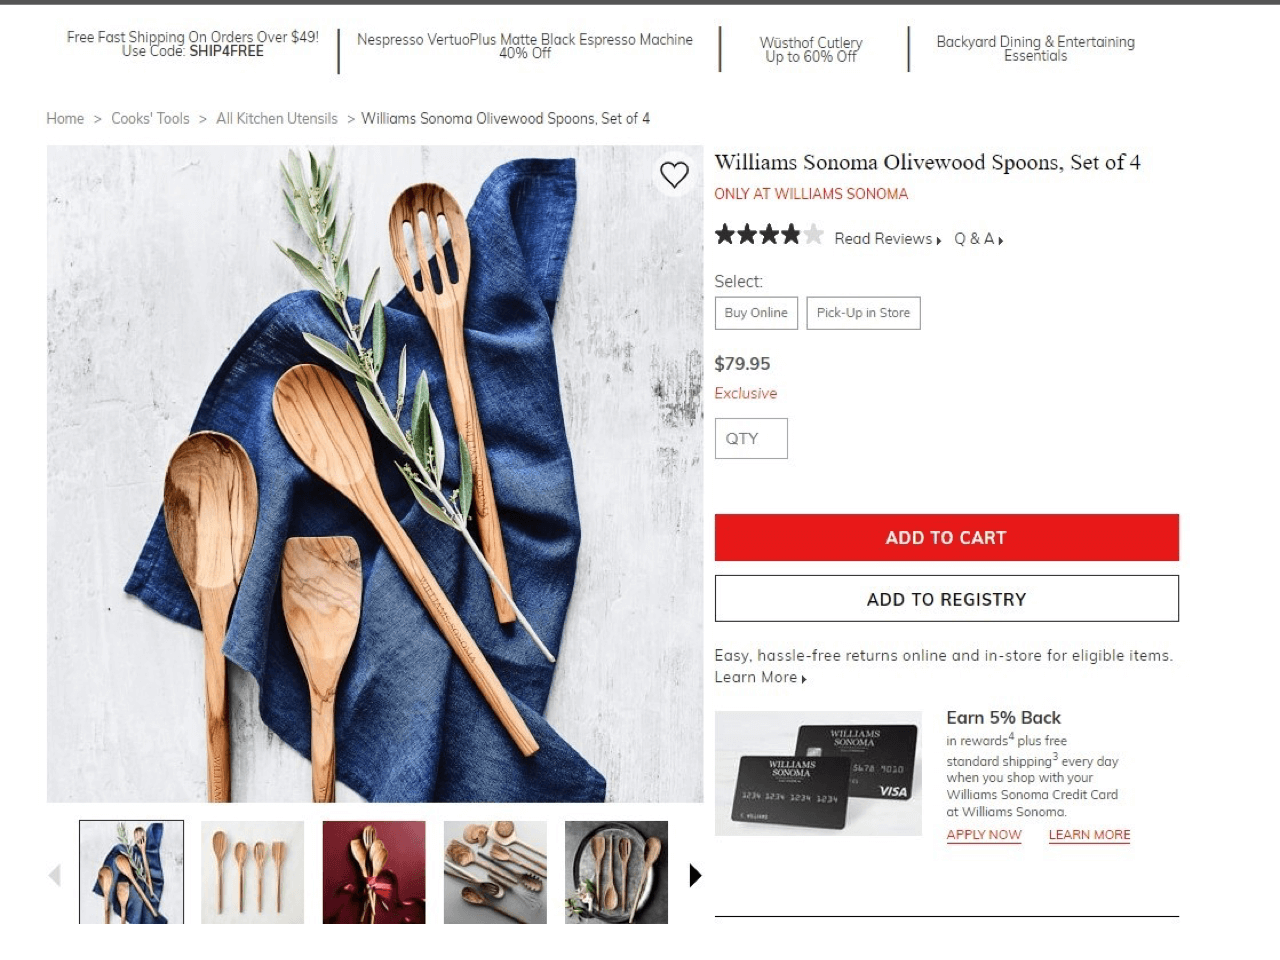 Williams Sonoma uses scarcity to increase store sales